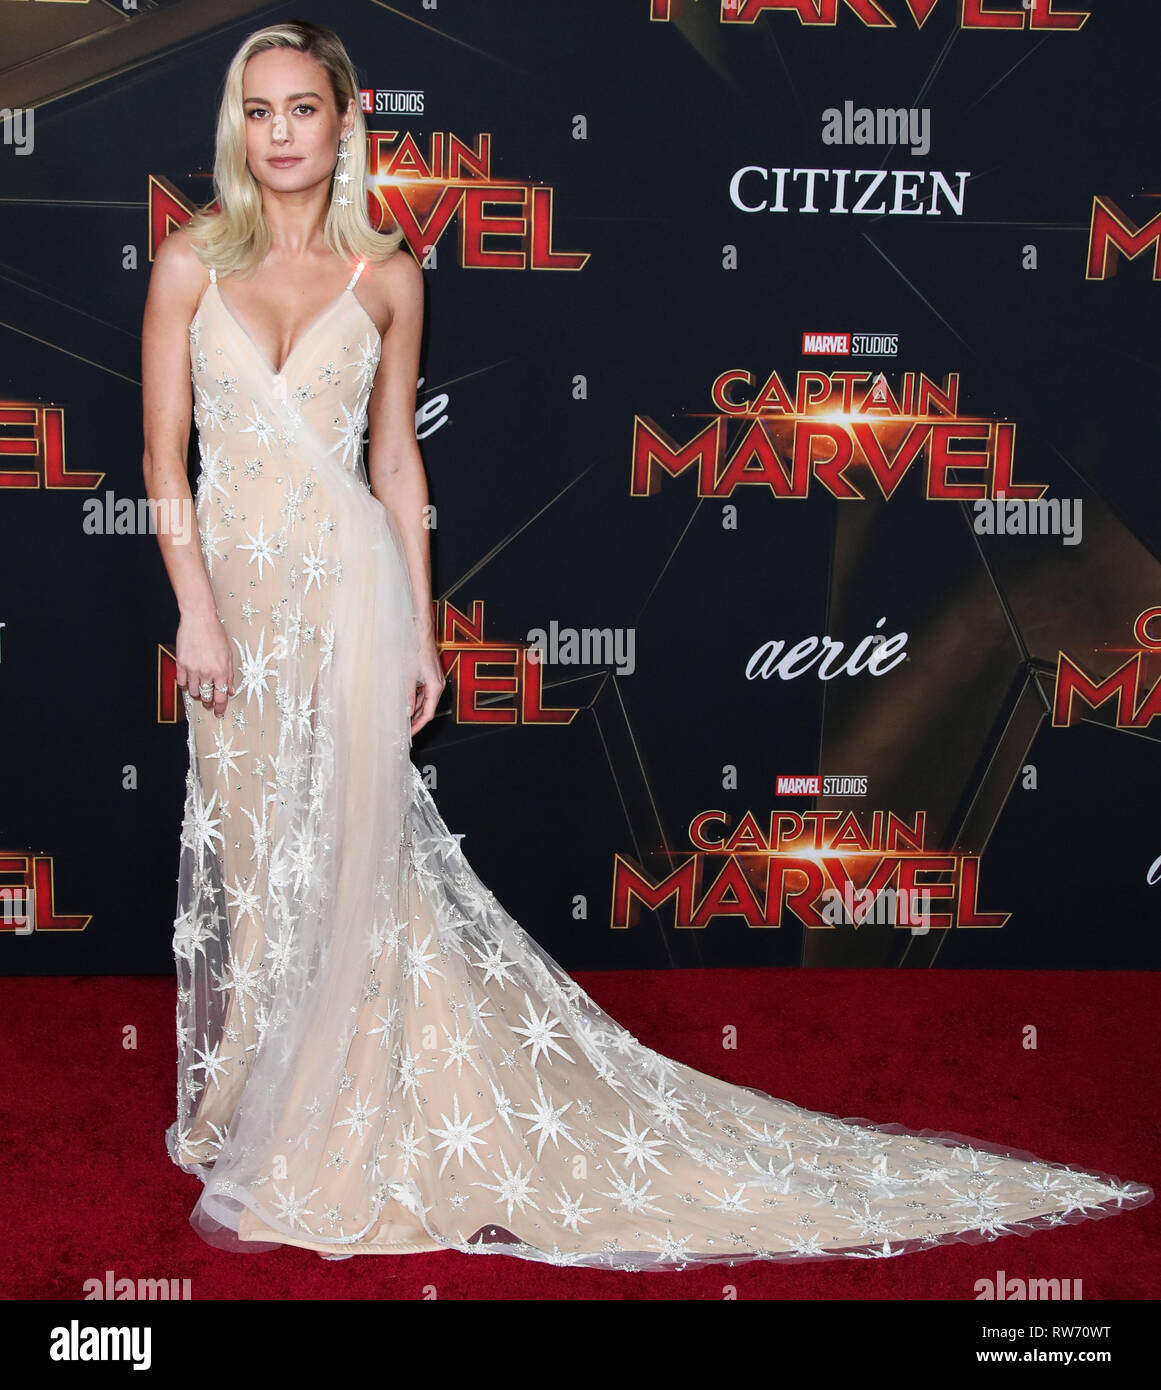 Hollywood, United States. 04th Mar, 2019. HOLLYWOOD, LOS ANGELES, CA, USA - MARCH 04: Actress Brie Larson wearing a Rodarte gown and APM Monaco rings arrives at the World Premiere Of Marvel Studios 'Captain Marvel' held at the El Capitan Theatre on March 4, 2019 in Hollywood, Los Angeles, California, United States. (Photo by Xavier Collin/Image Press Agency) Credit: Image Press Agency/Alamy Live News - Stock Image